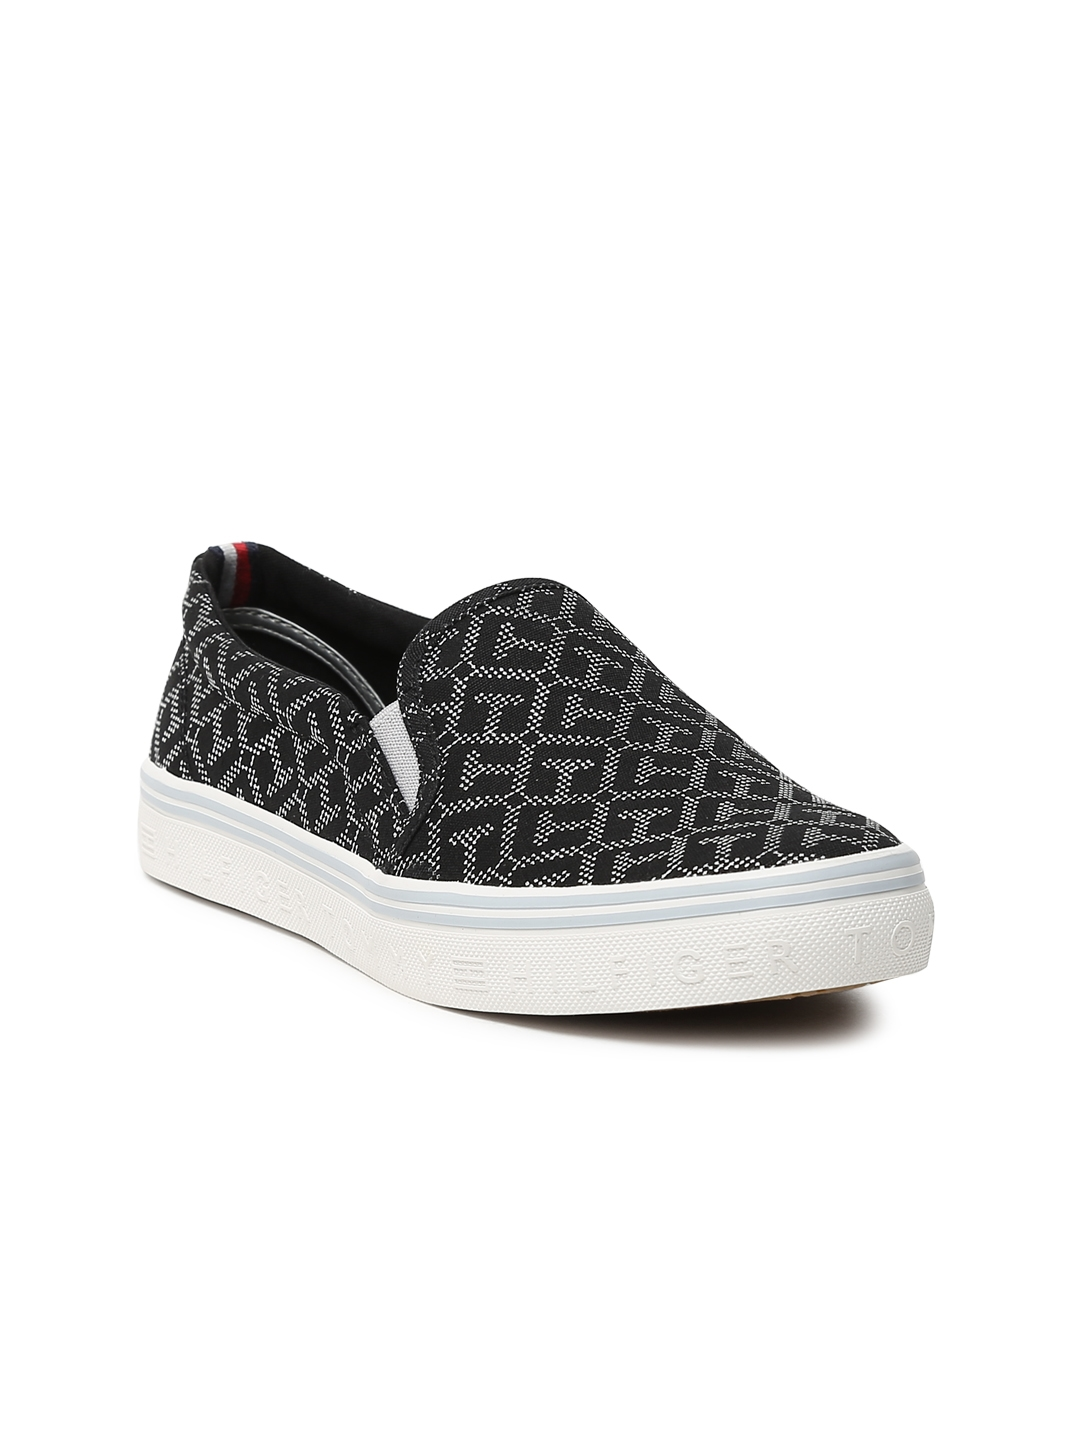 52e6a1efe Buy Tommy Hilfiger Women Black Self Design Slip On Sneakers - Casual ...